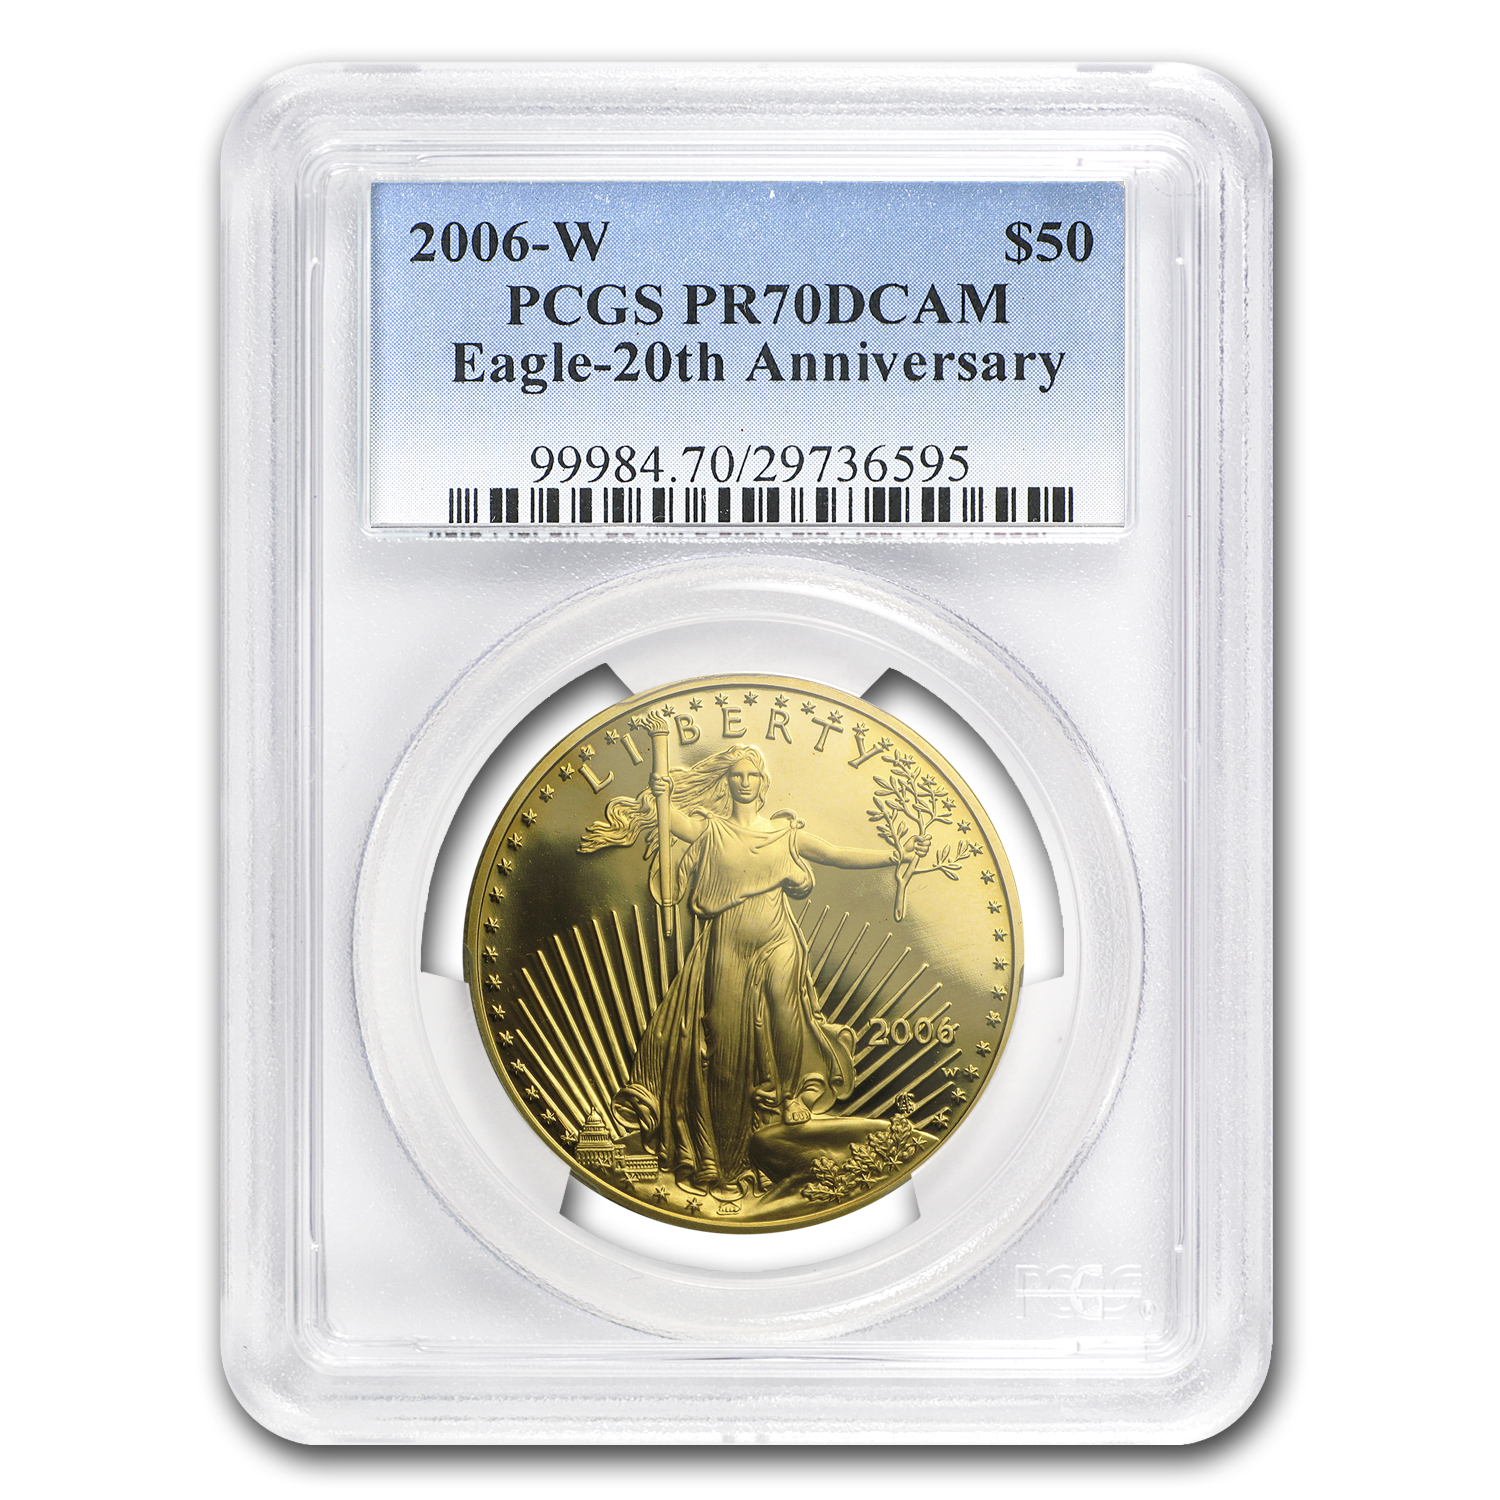 2006-W 1 oz Proof Gold American Eagle PR-70 PCGS